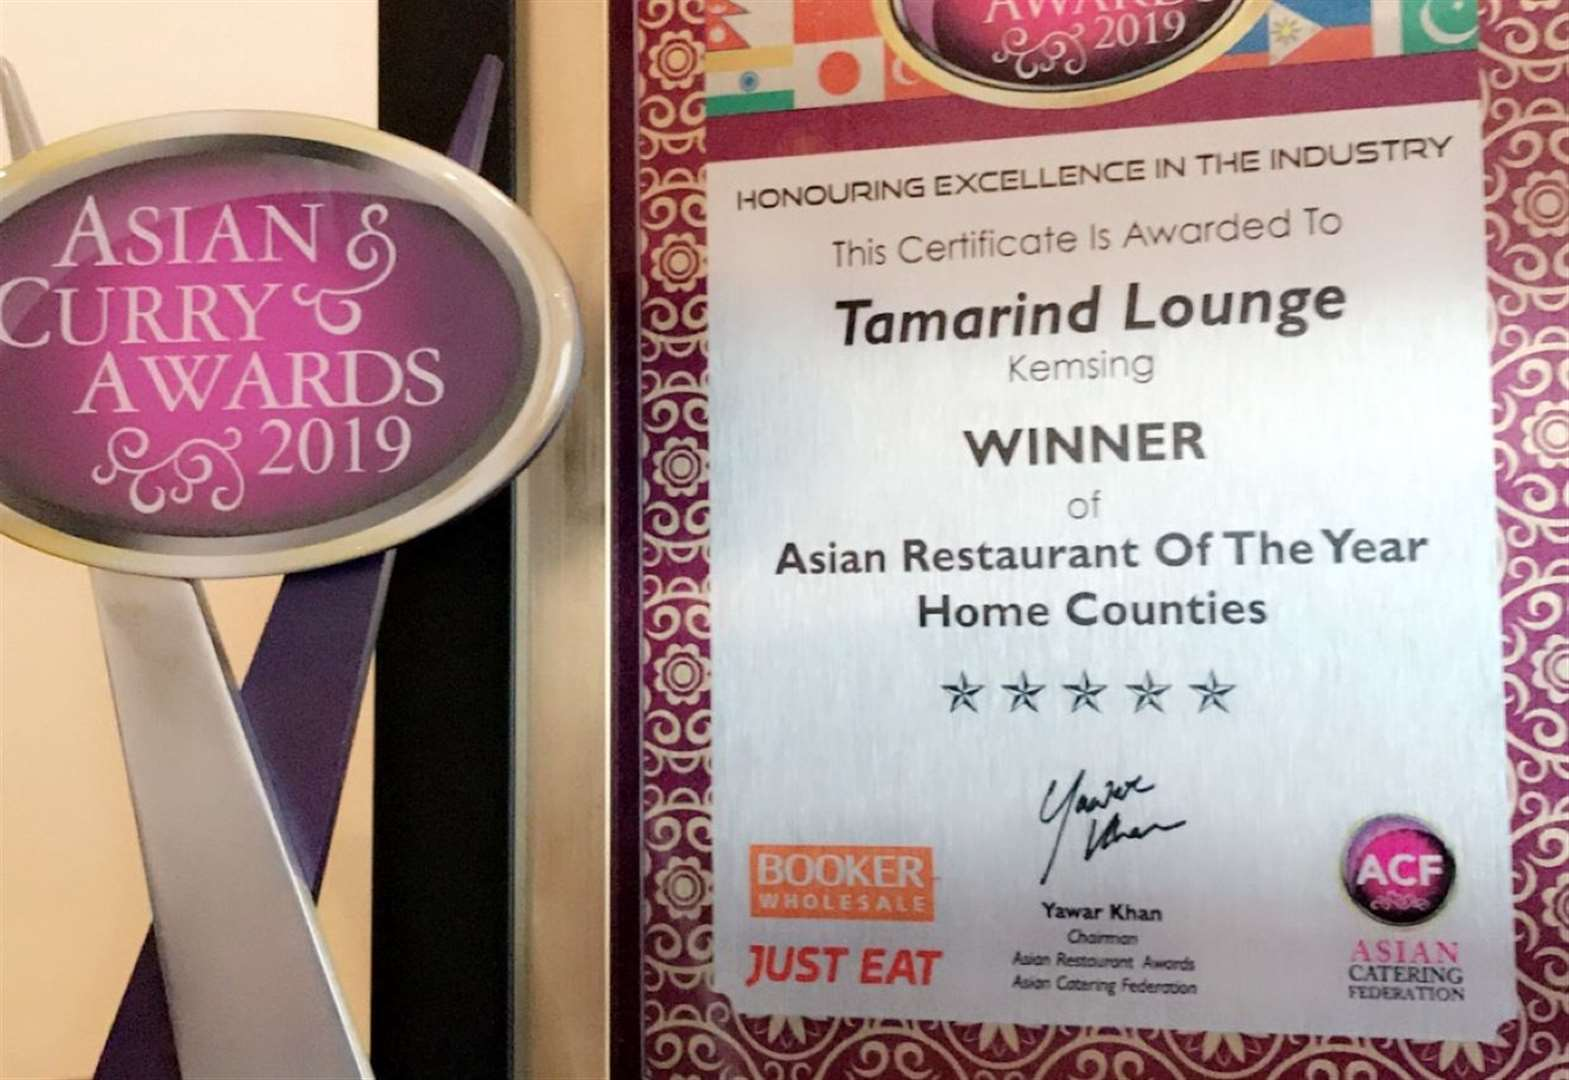 The best curry house is in Kemsing